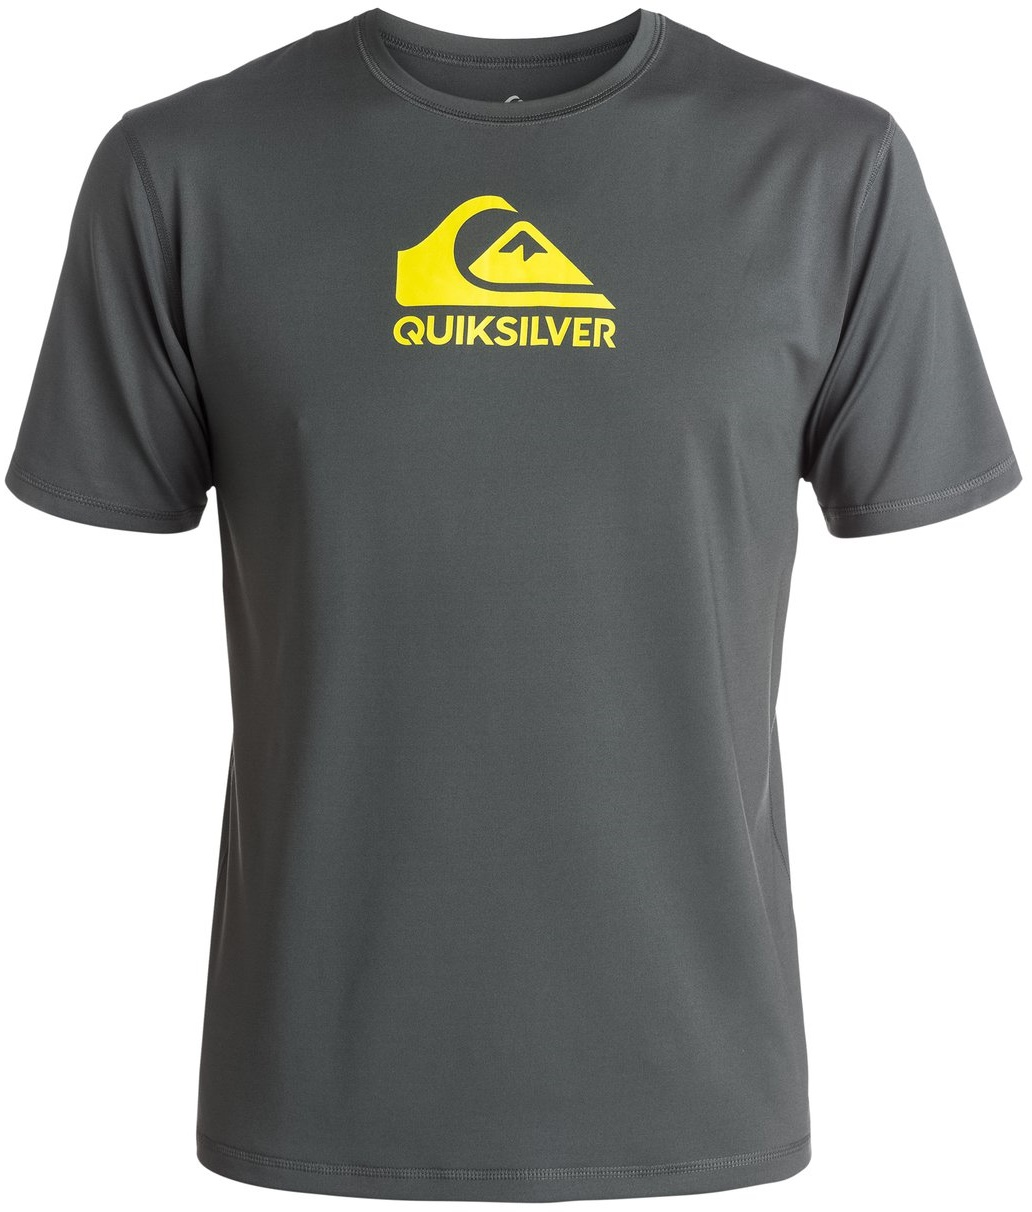 Quiksilver Men's Rashguard Short Sleeve Loose Fit  Solid Streak - Grey